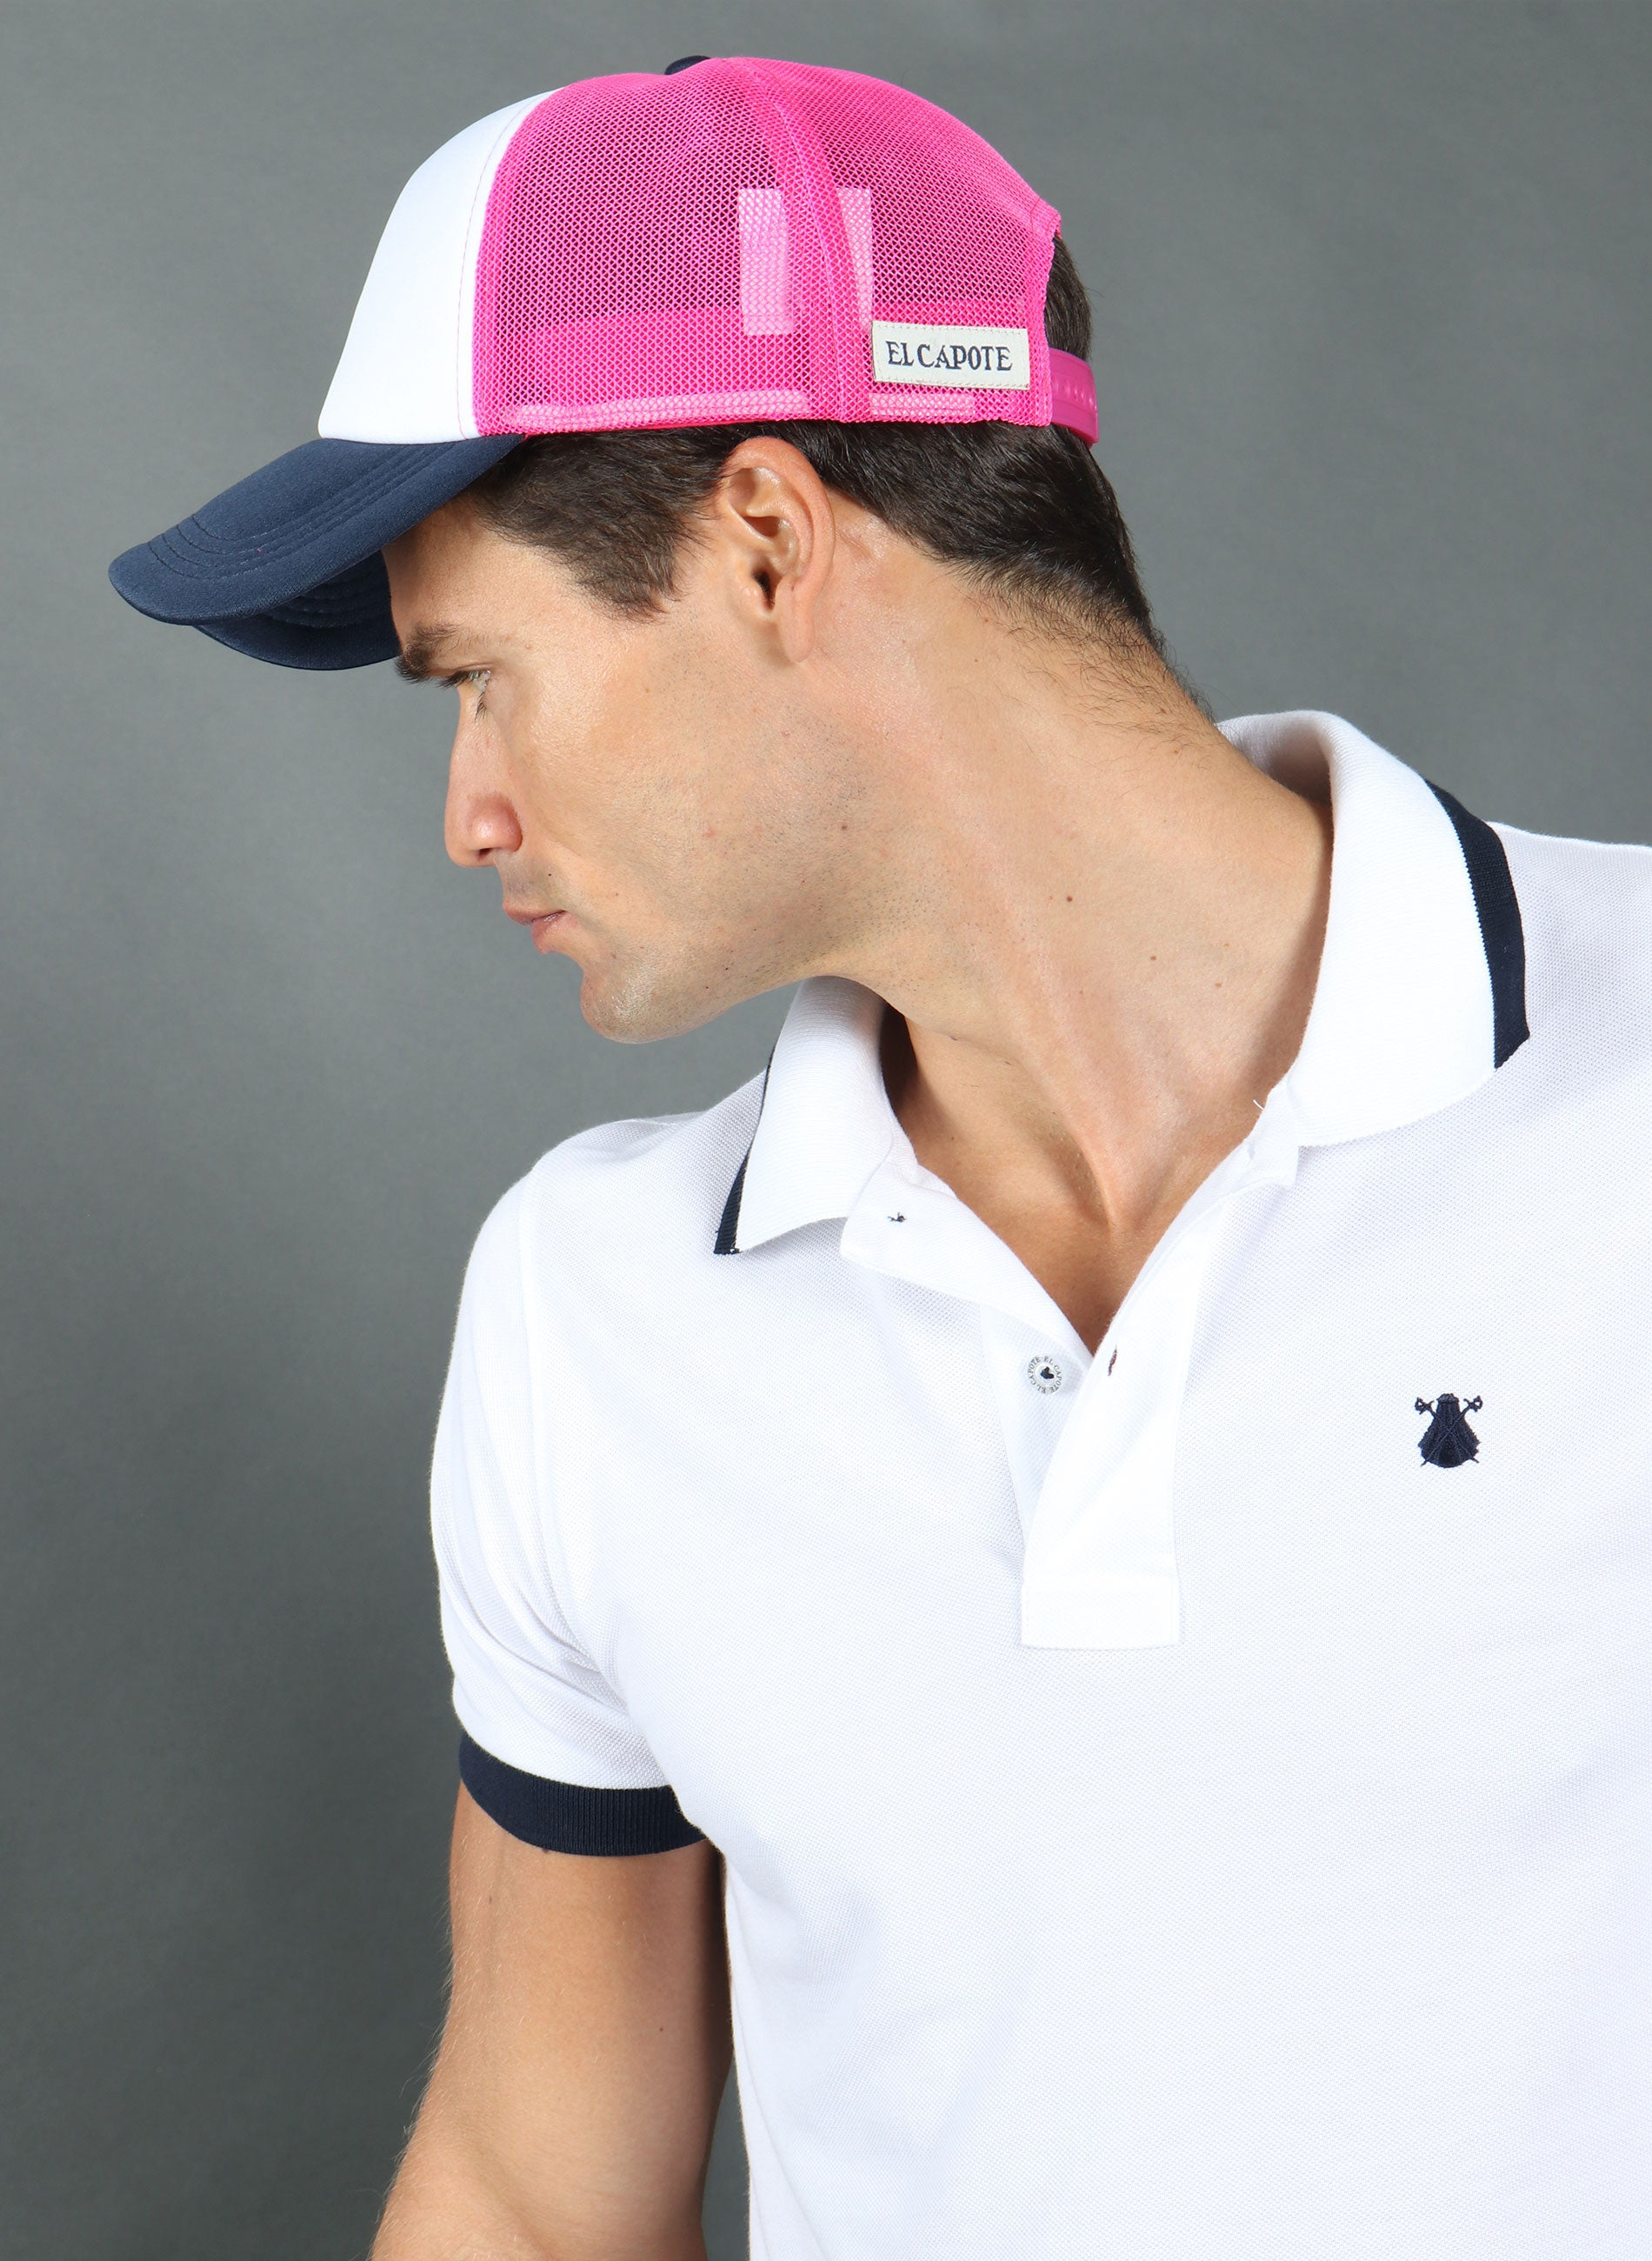 Fluor Pink Mesh Cap and Navy Cape